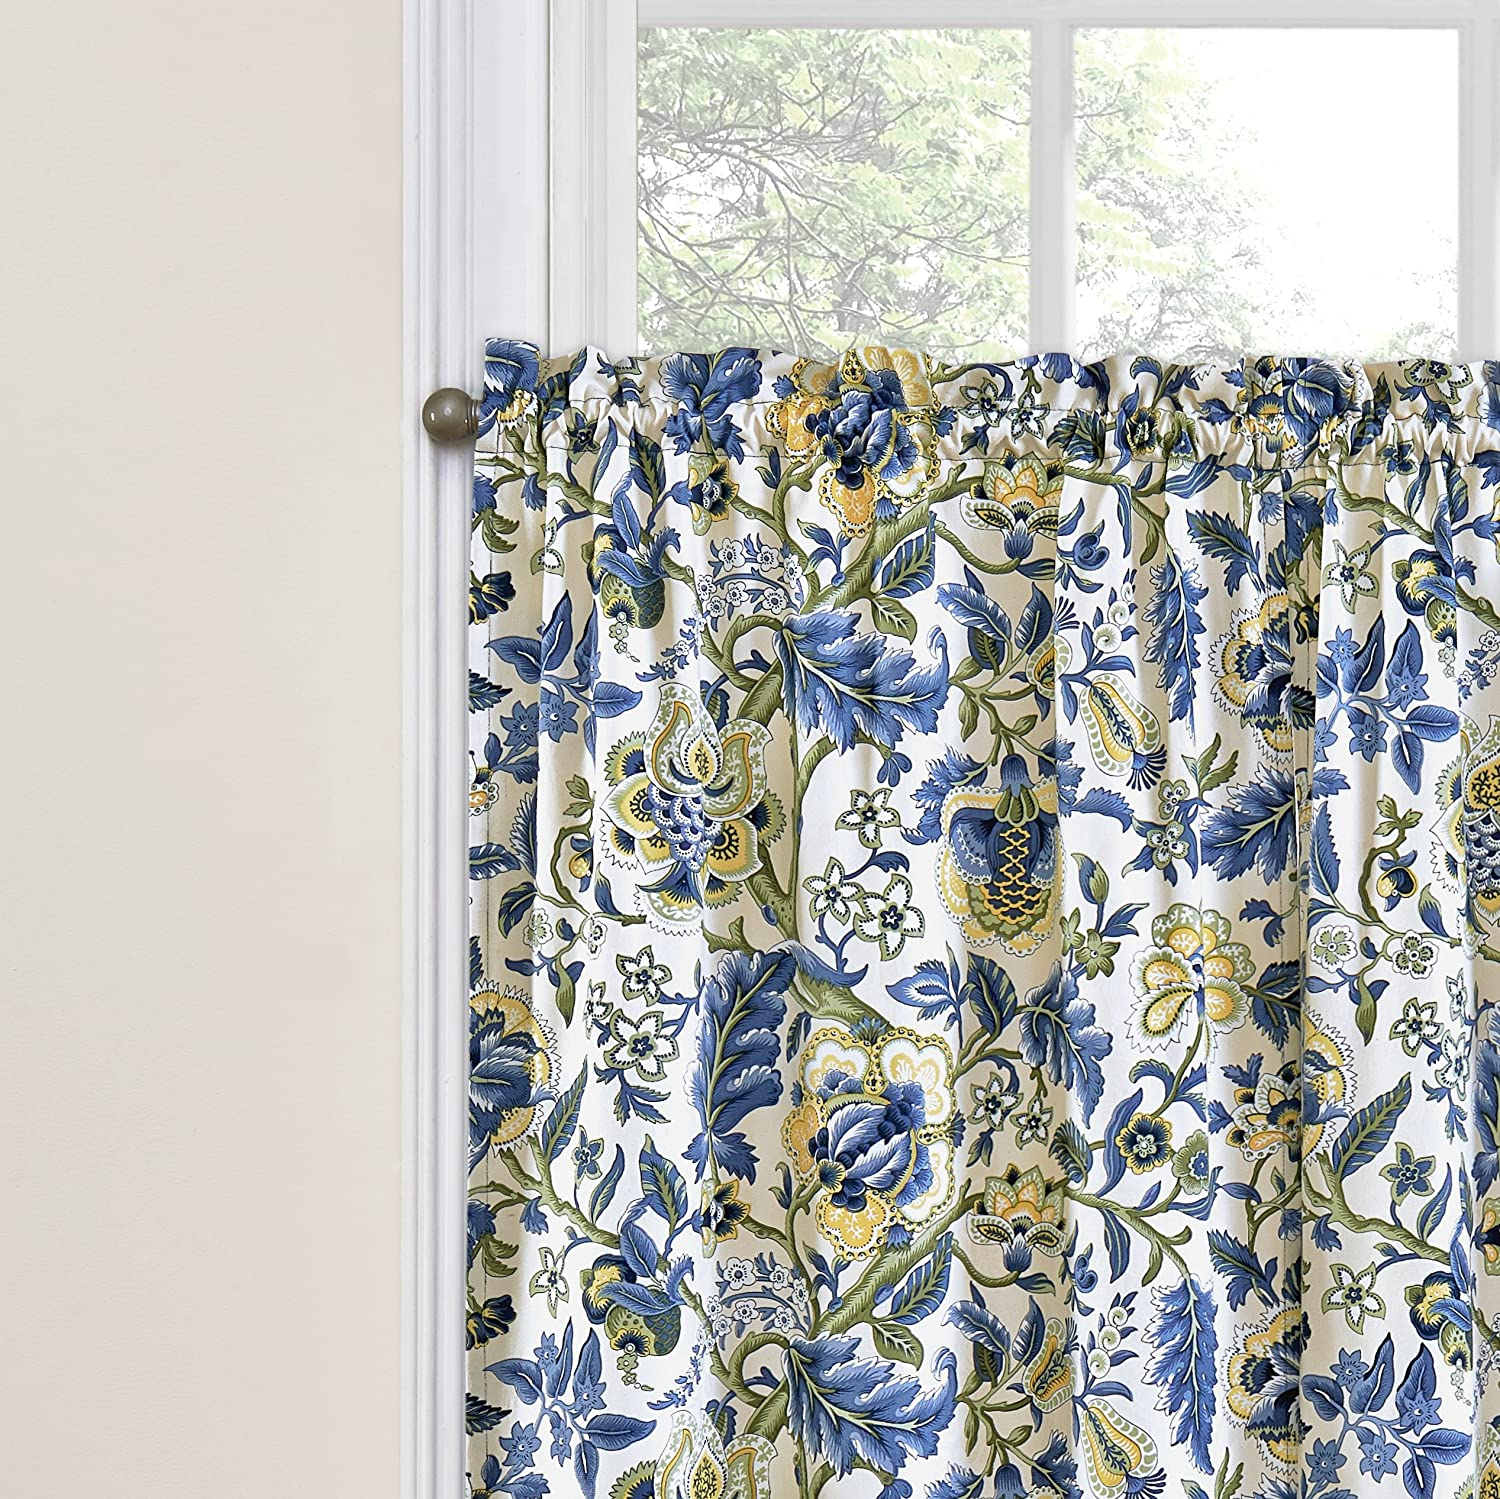 Amazon Com Waverly Kitchen Curtains For Windows Imperial Dress 52 X 24 Small Window Panel Tiers Privacy Window Treatment Pair Bathroom Living Room Porcelain Home Kitchen